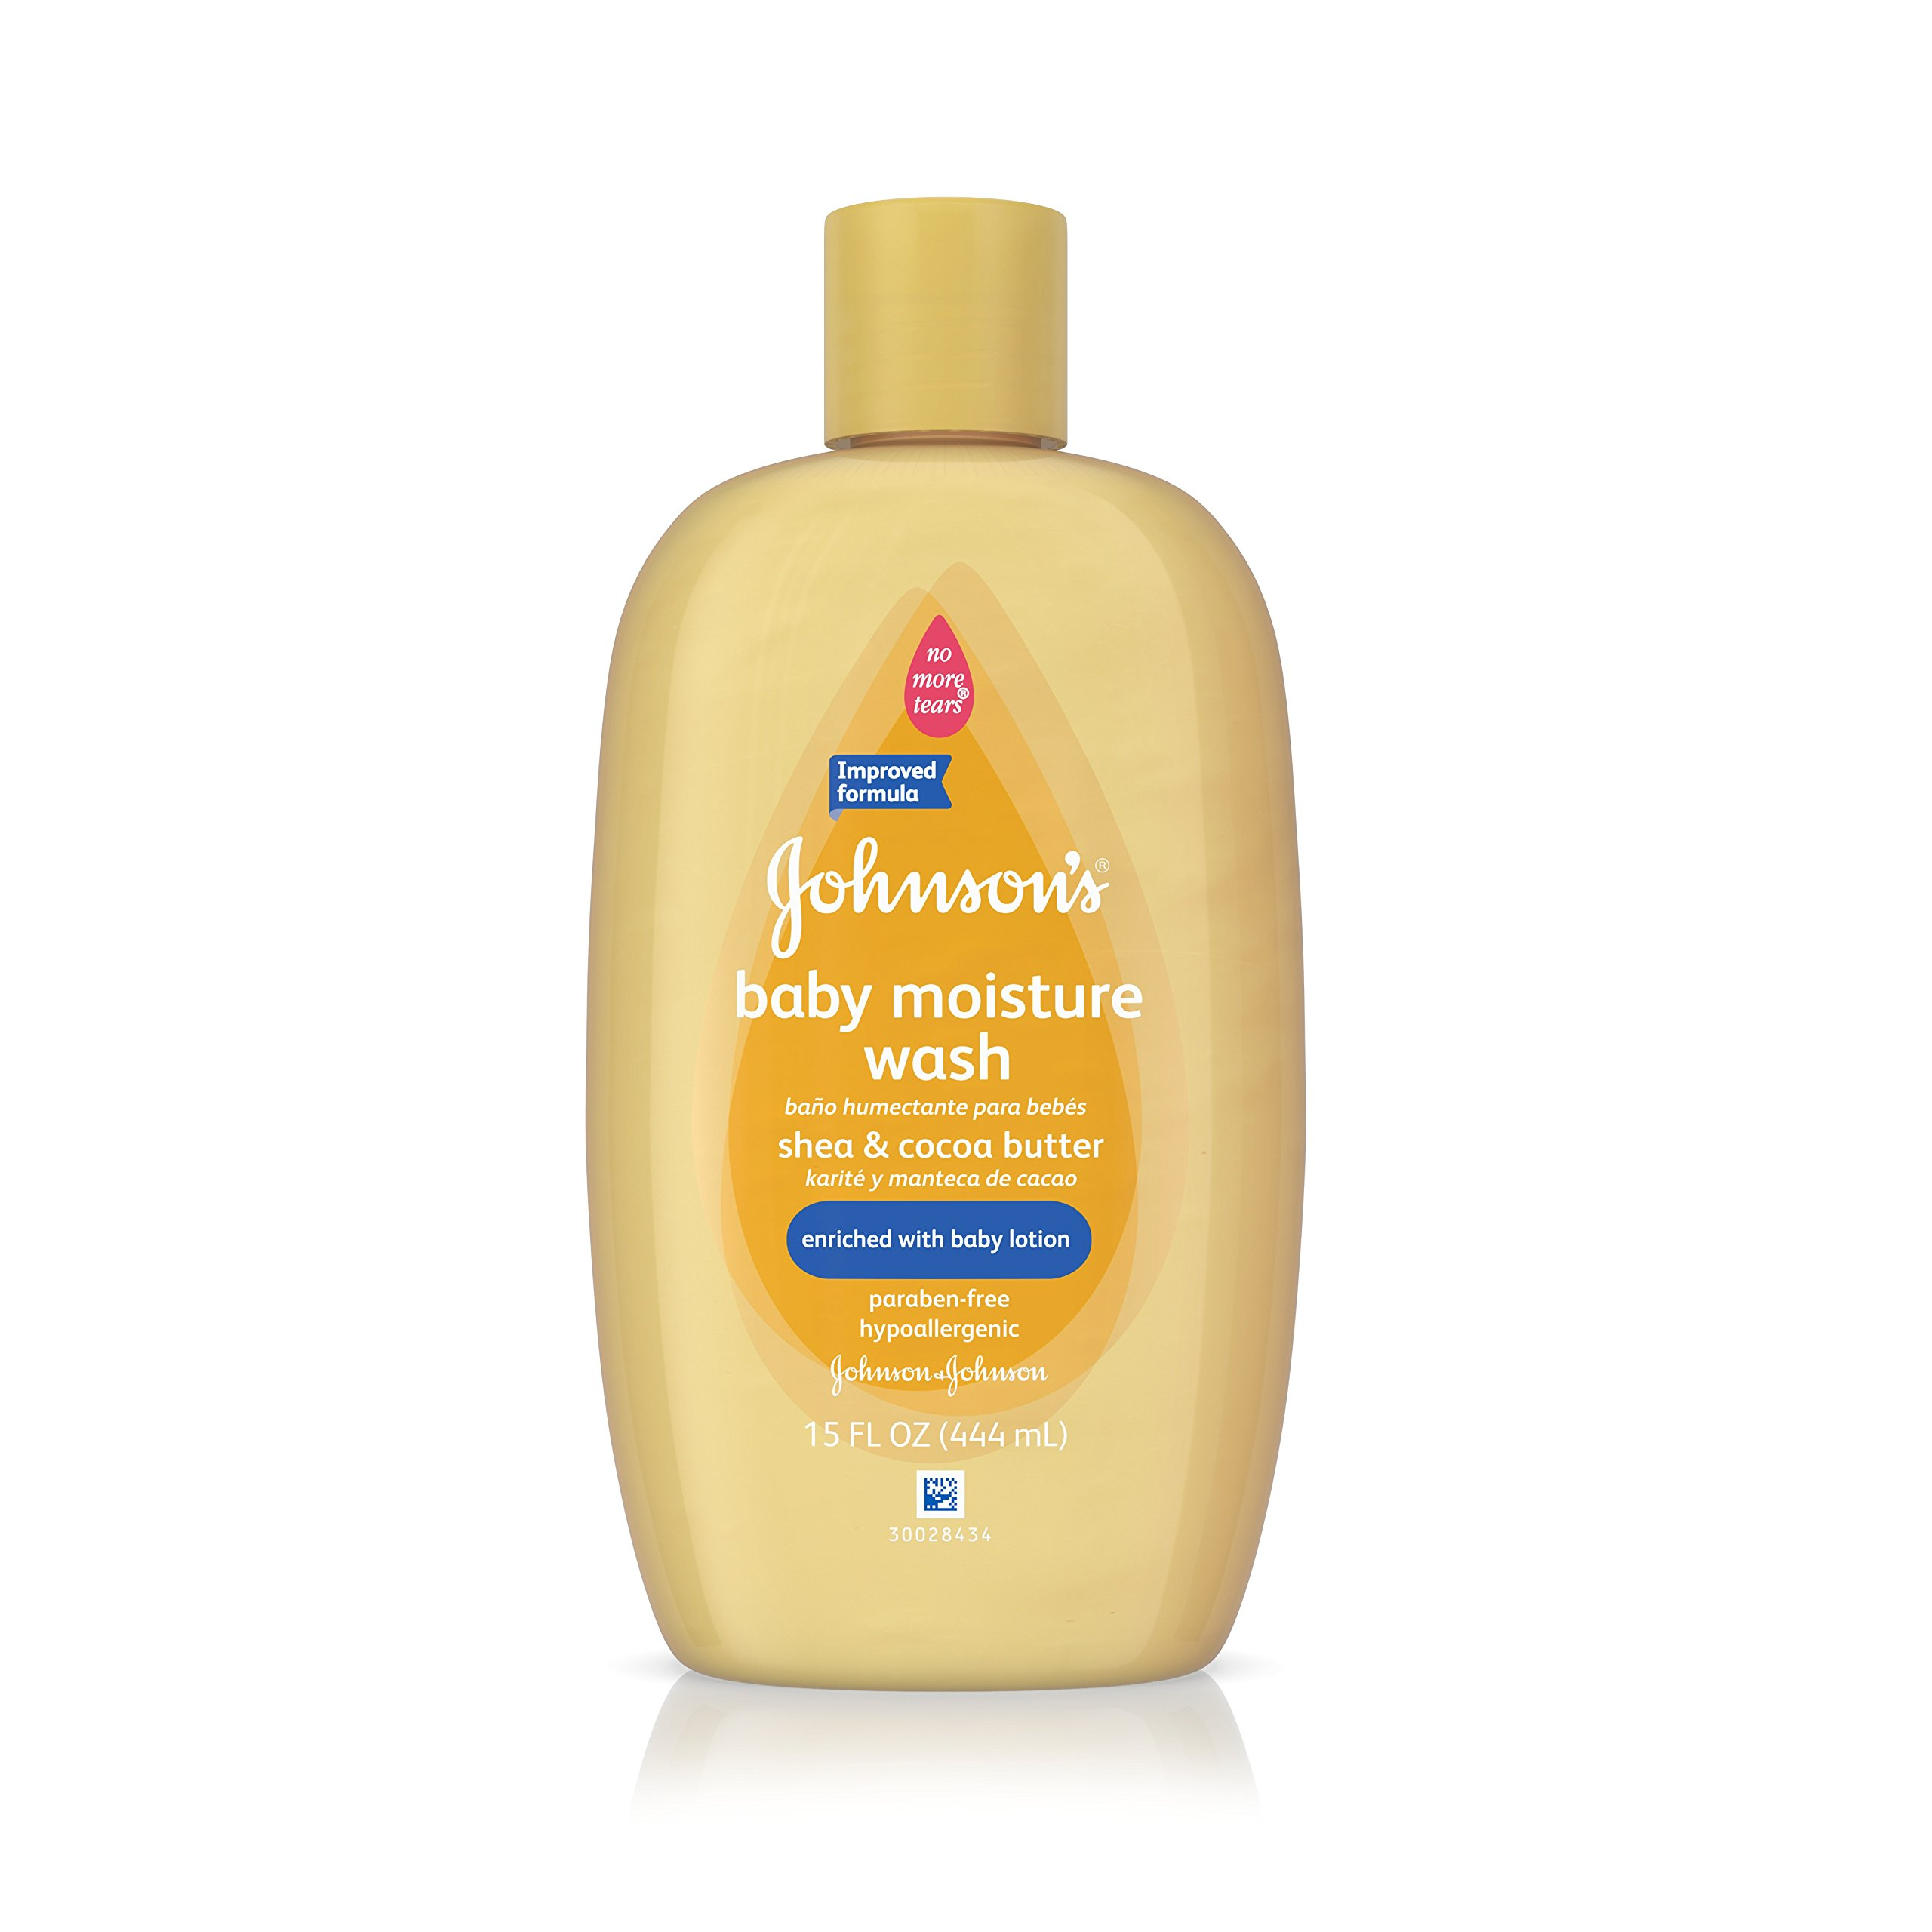 Johnson's Baby Shea & Cocoa Butter Moisture Wash For Soft Skin, 15 Oz. by Johnson's Baby